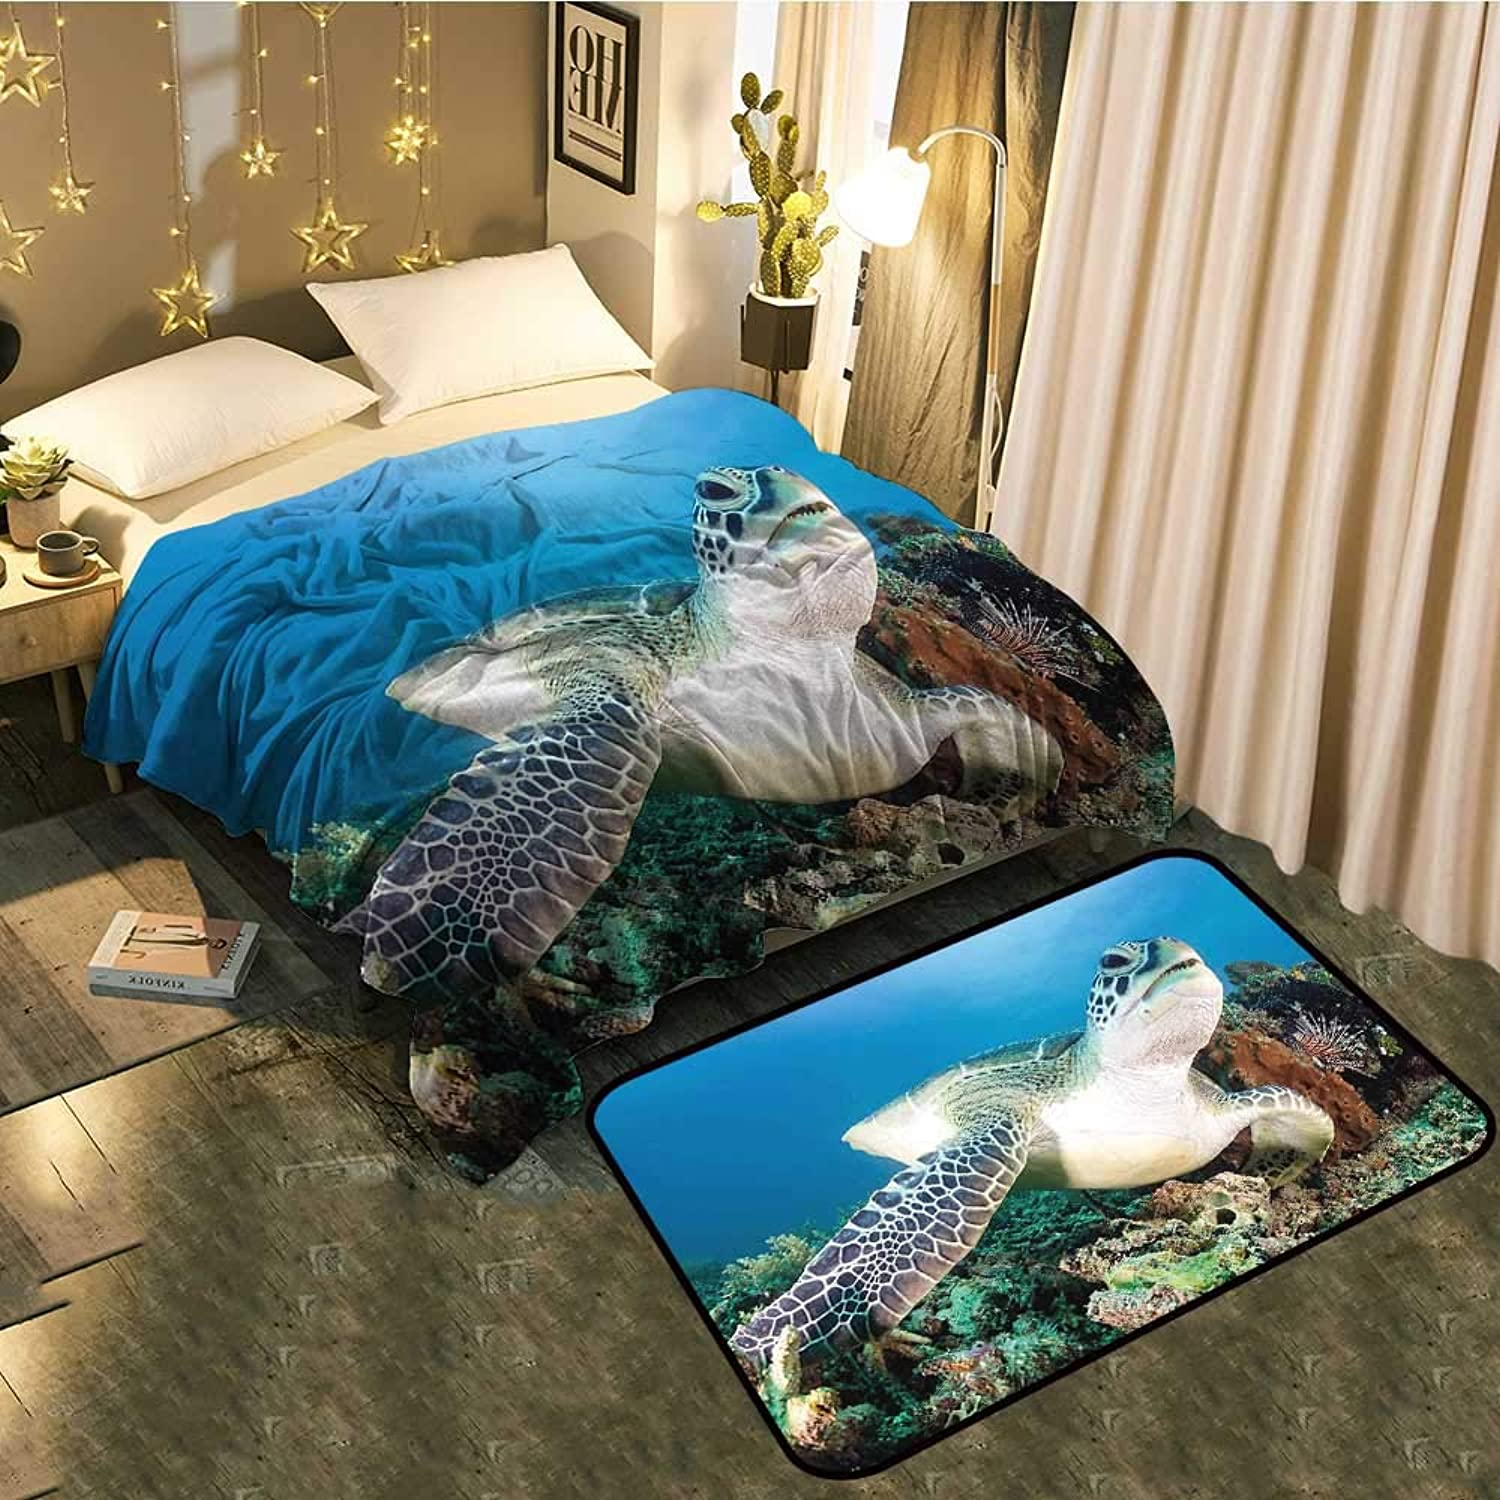 Bedside Blanket Doormat suitof Green Turtle and Lion Fish on Tropical Coral Reef Chelonia Snorkeling bluee Cozy and Durable Blanket 60 x70  Mat 35 x23